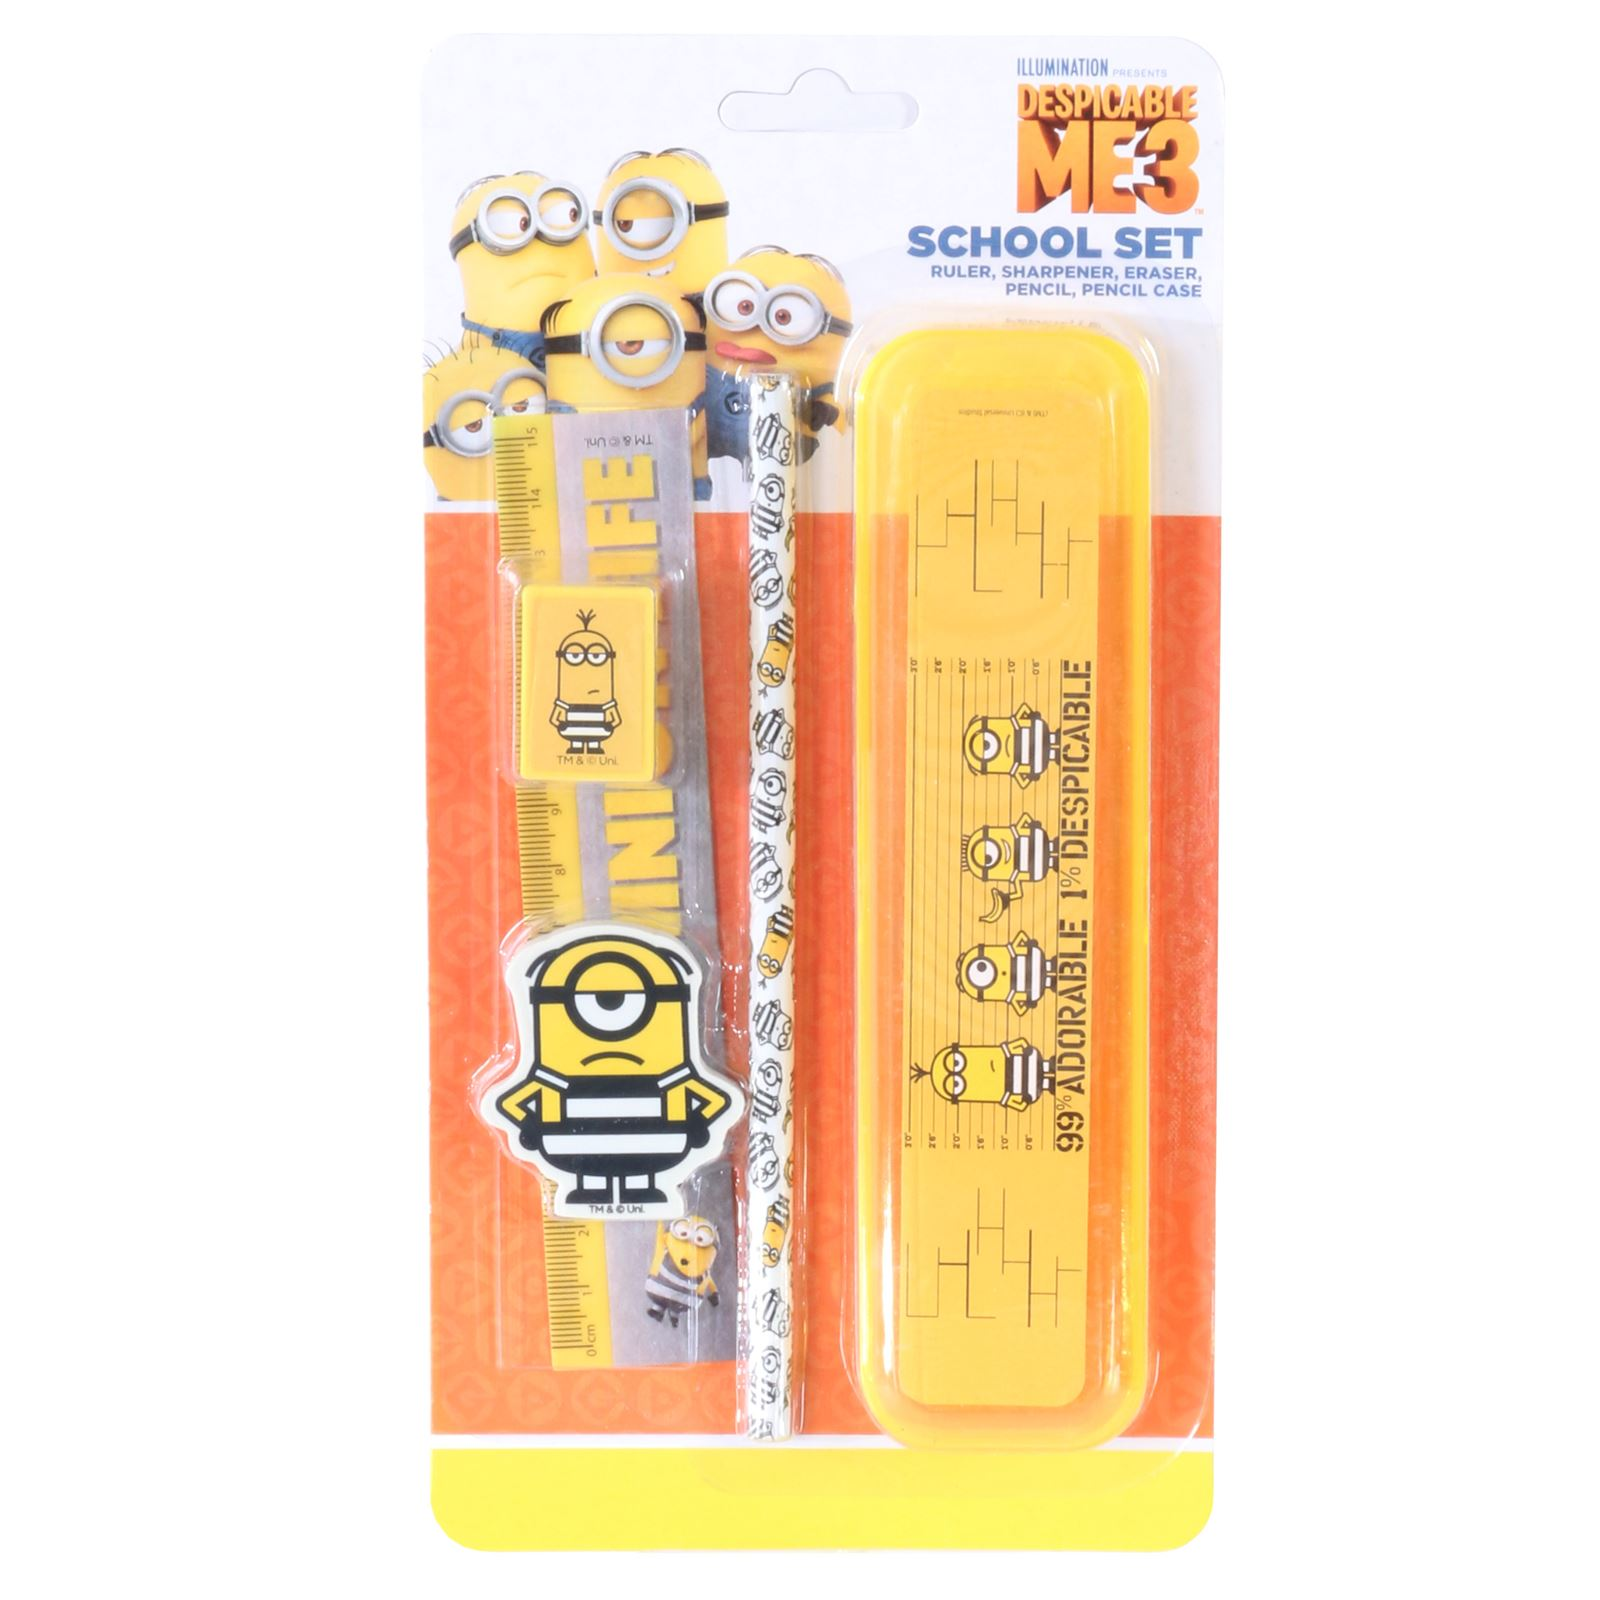 10 x Student Set includes Ruler Pencils Pen Eraser Sharpener BACK TO SCHOOL